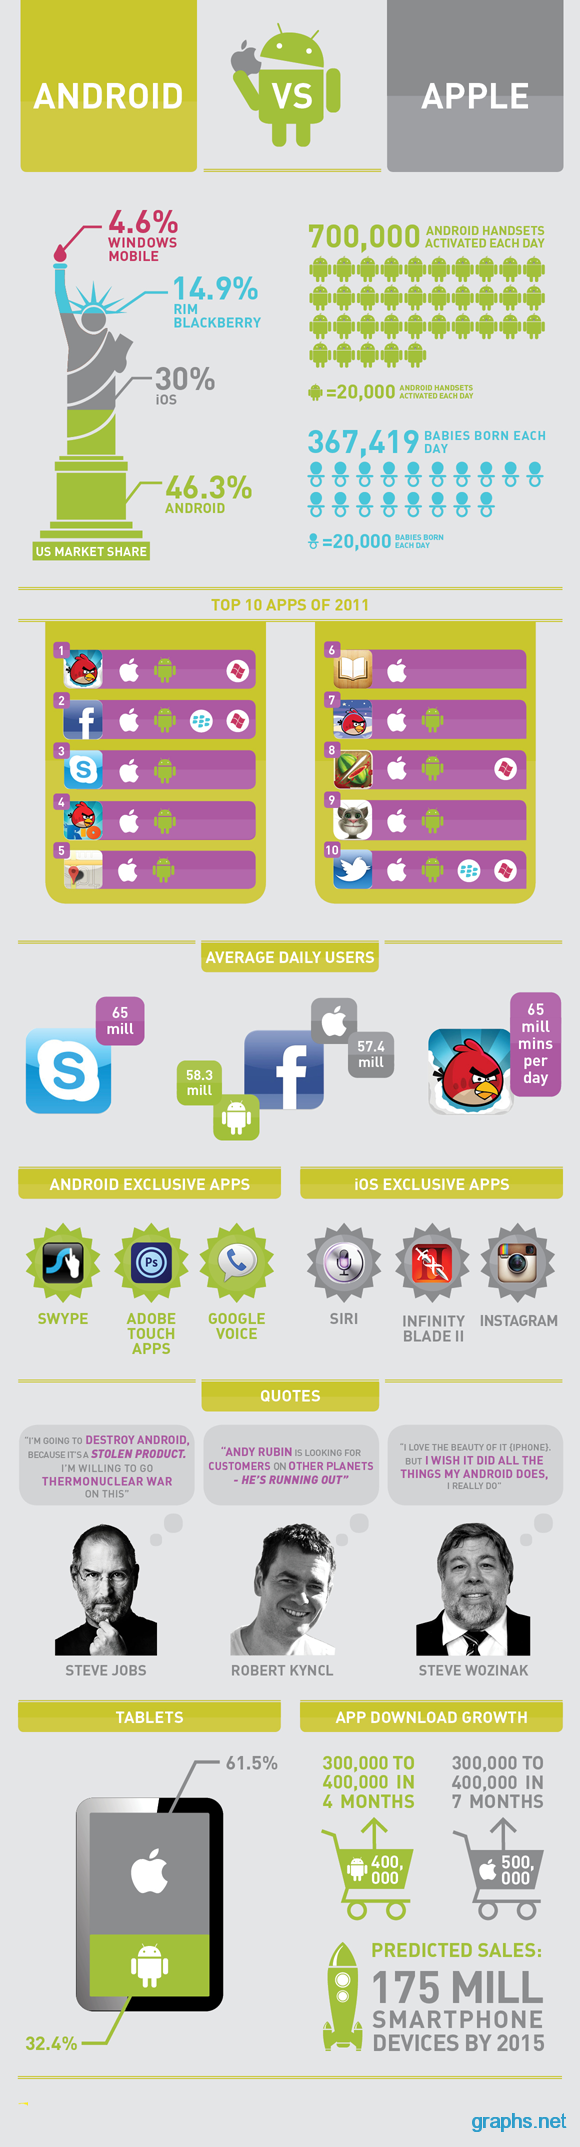 android vs apple infographic